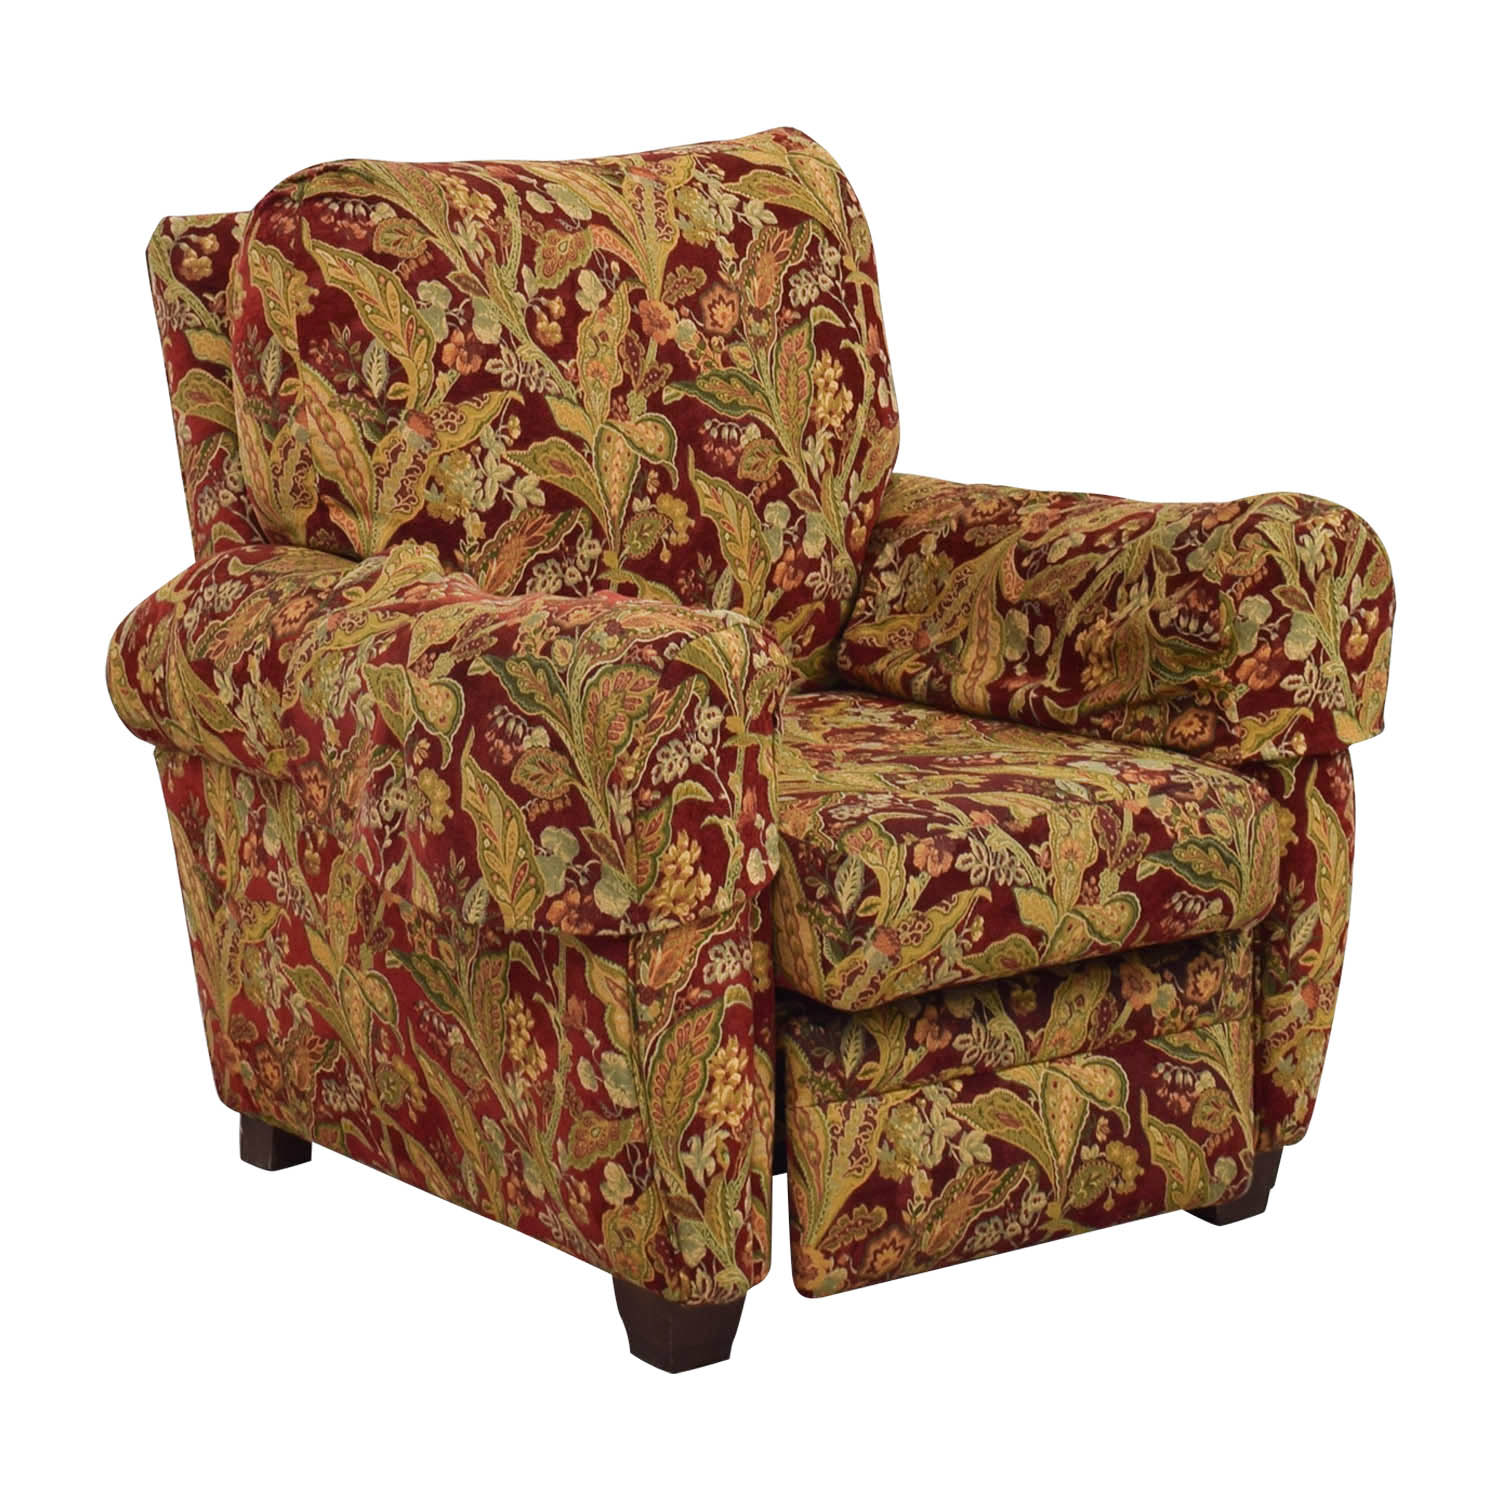 84 Off Lazy Boy Lazy Boy Burgundy Floral Recliner Chairs